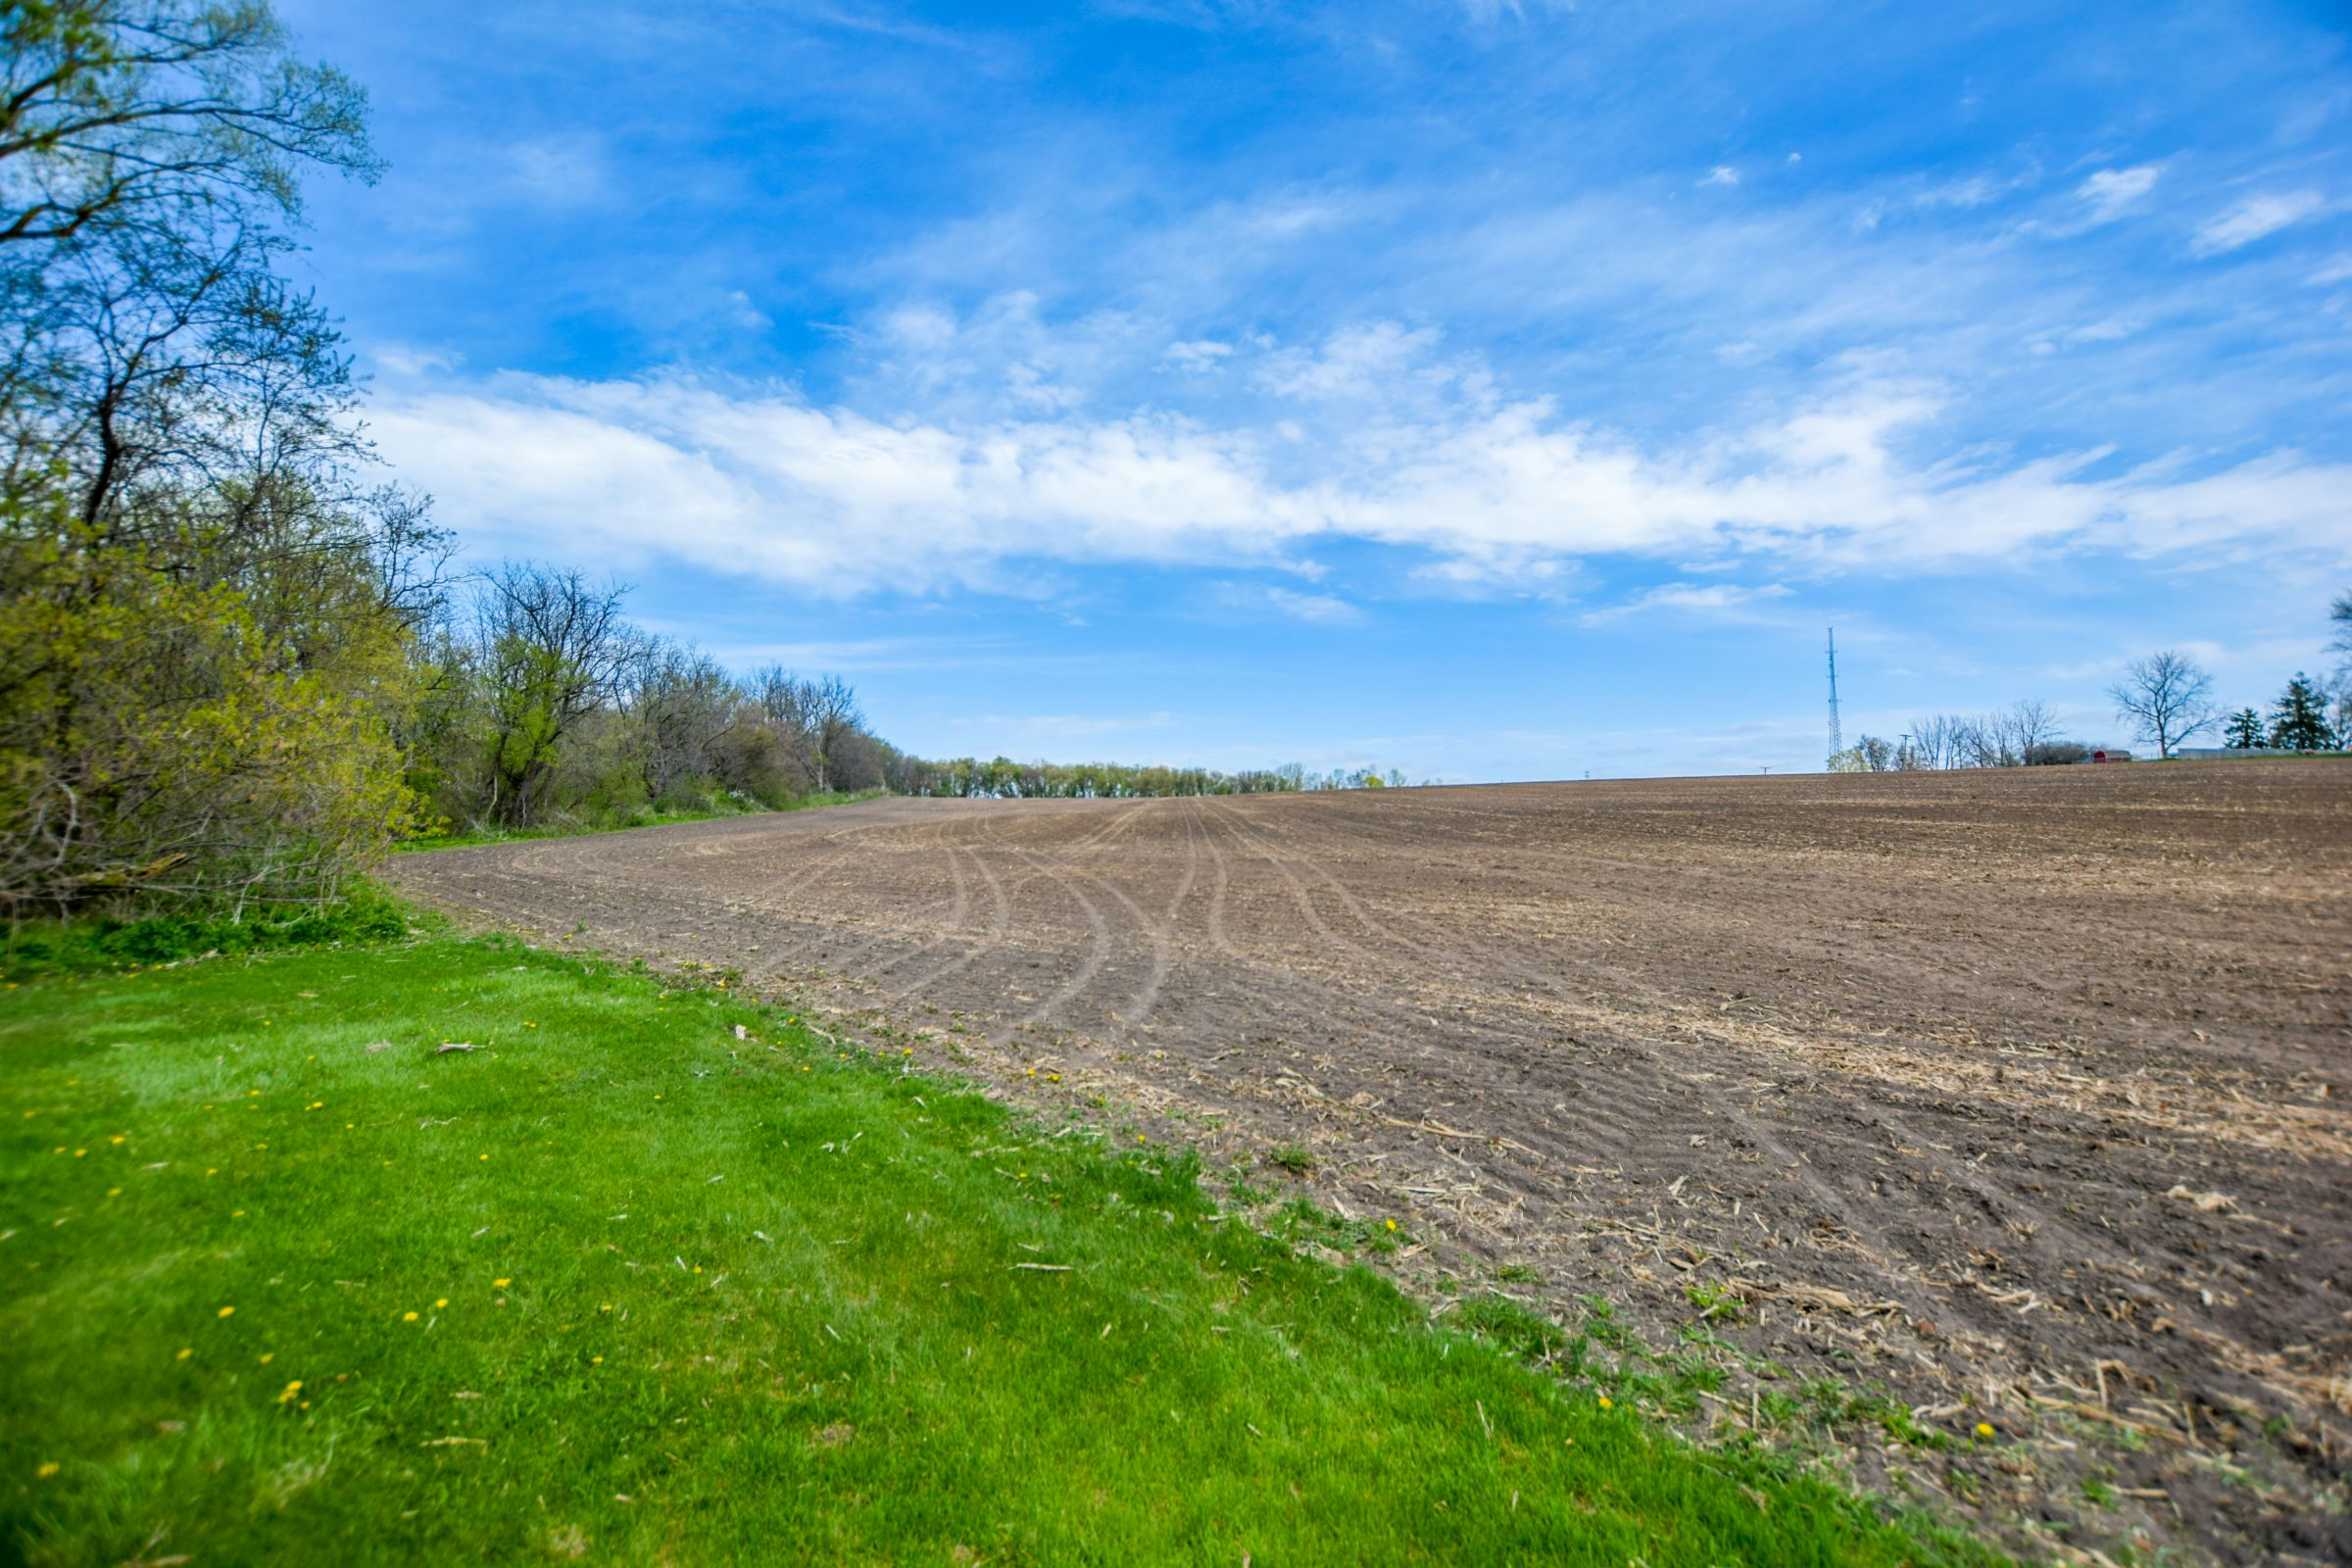 development-land-commercial-iowa-county-wisconsin-152-acres-listing-number-15474-0-2021-05-18-165925.jpg